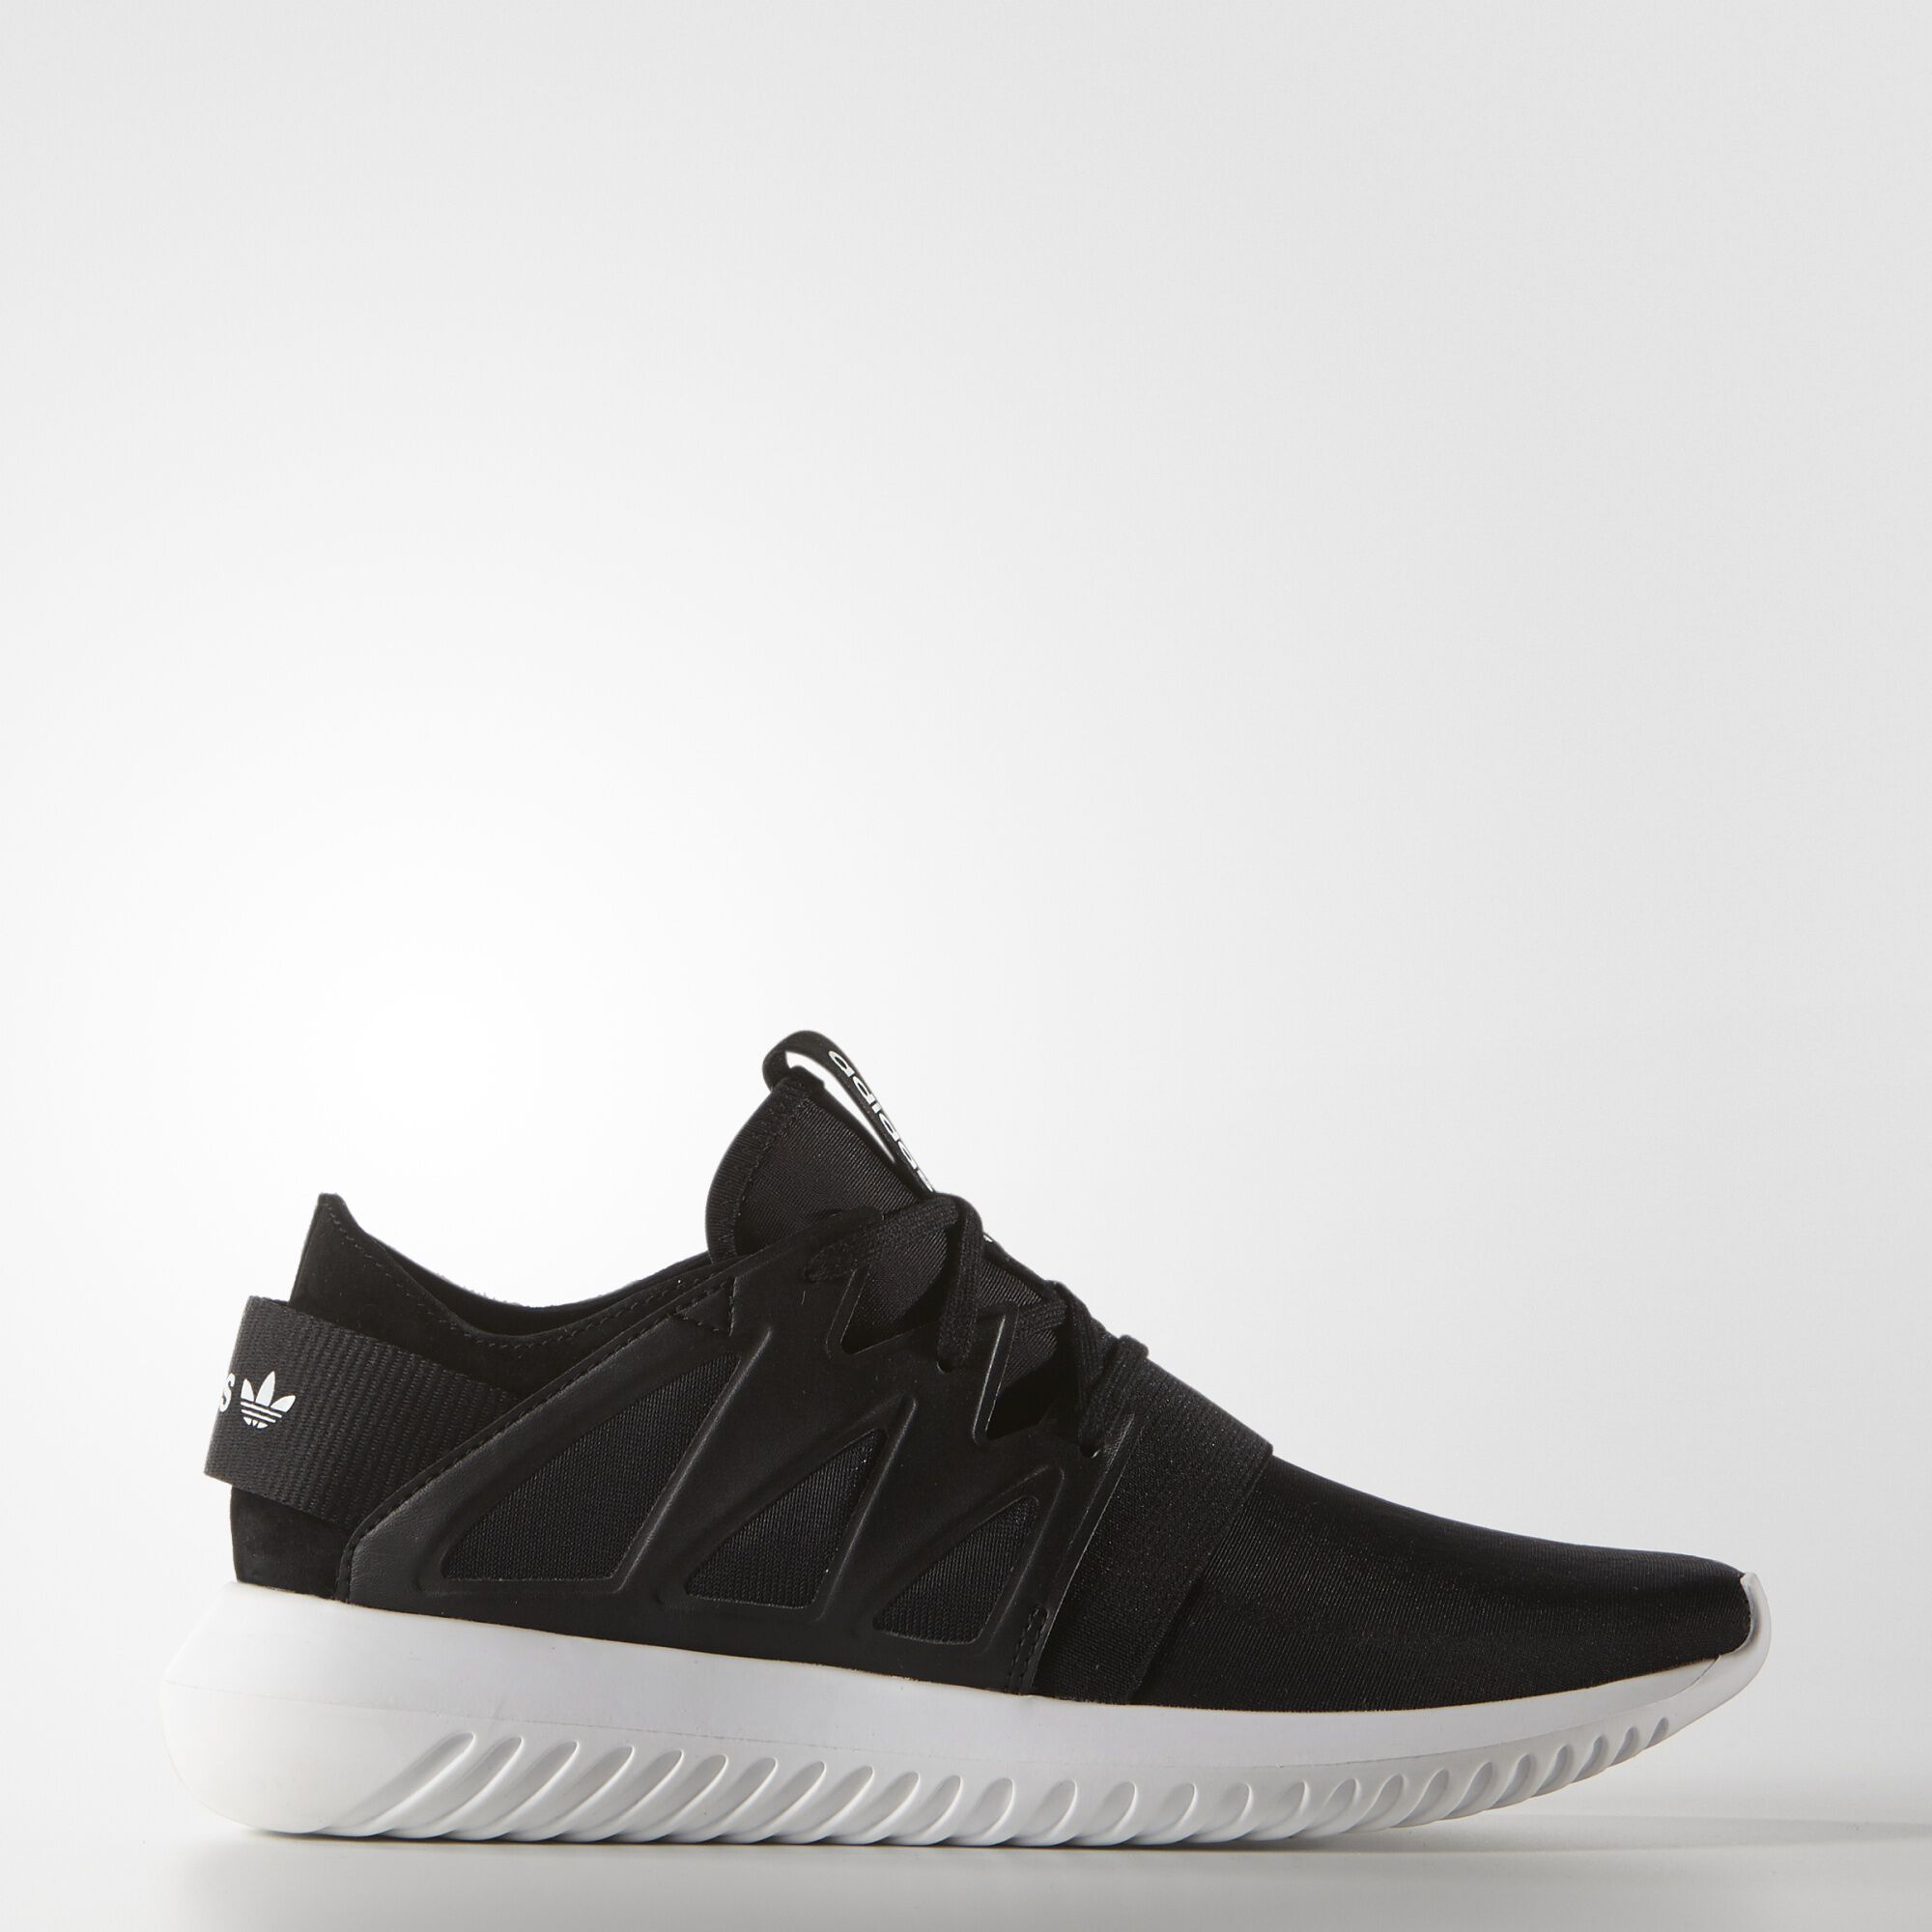 Adidas Tubular Viral All Black